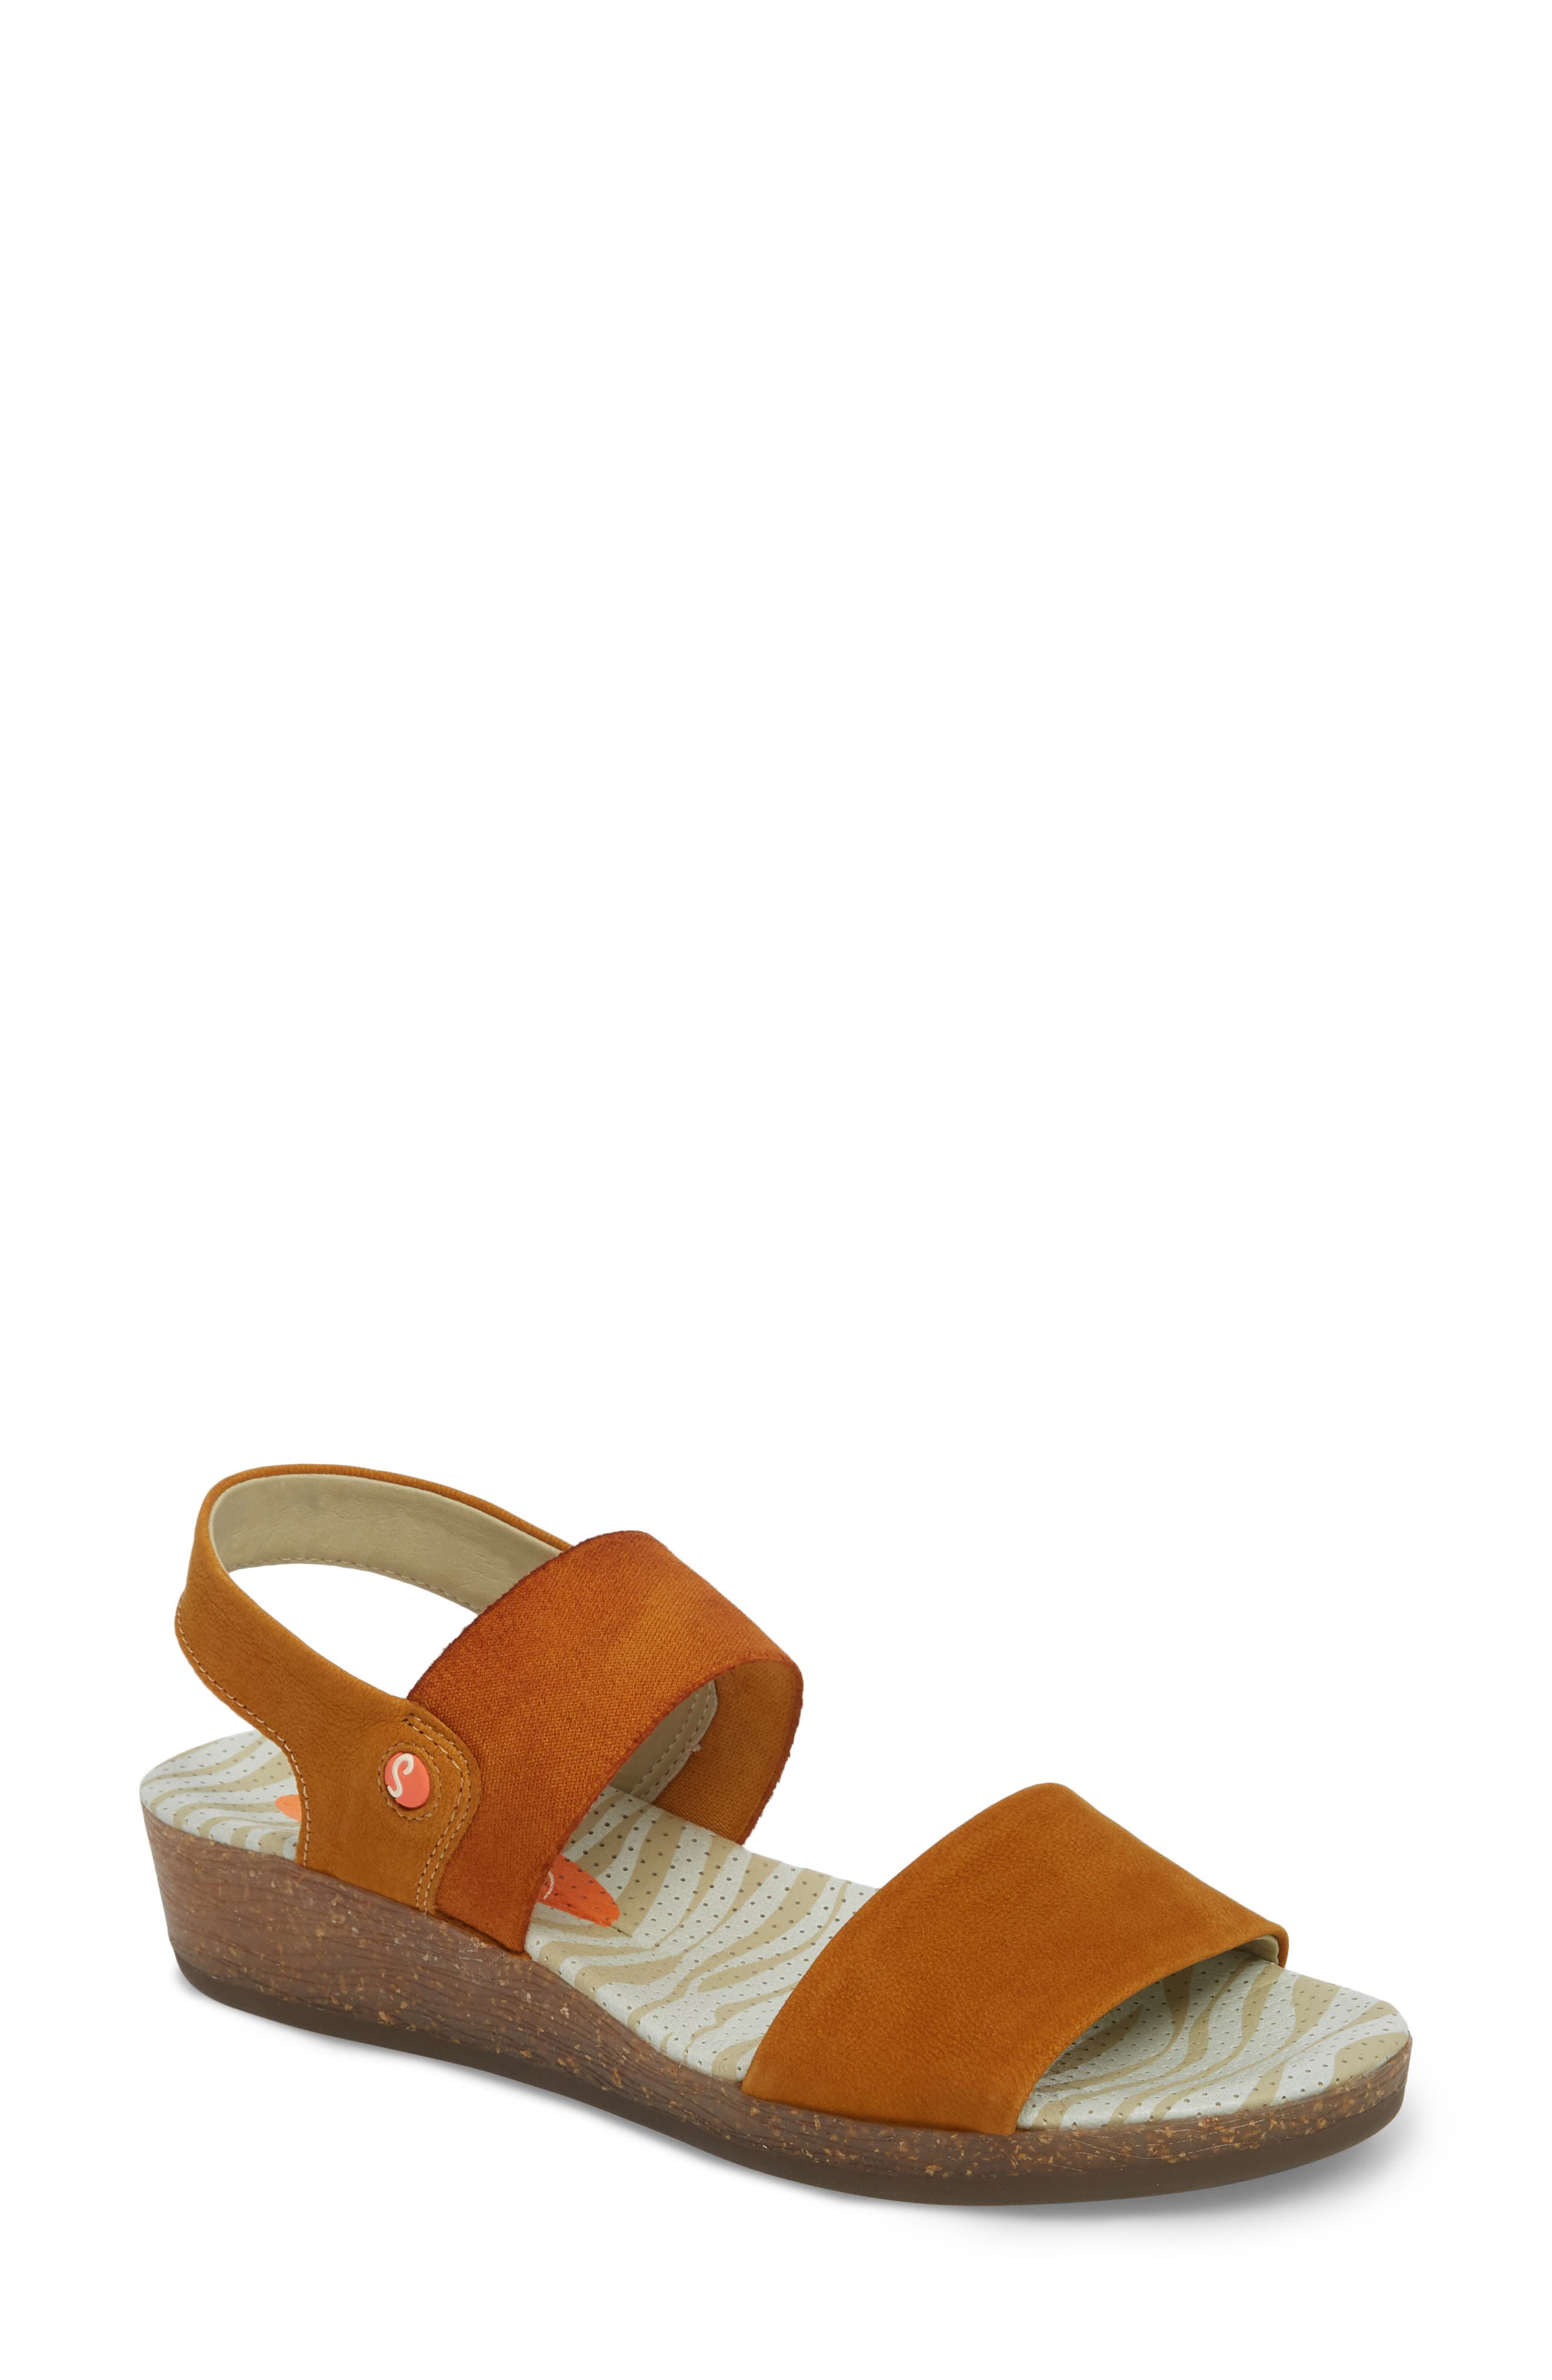 Softinos By Fly London Alp425Sof Sandal, Yellow